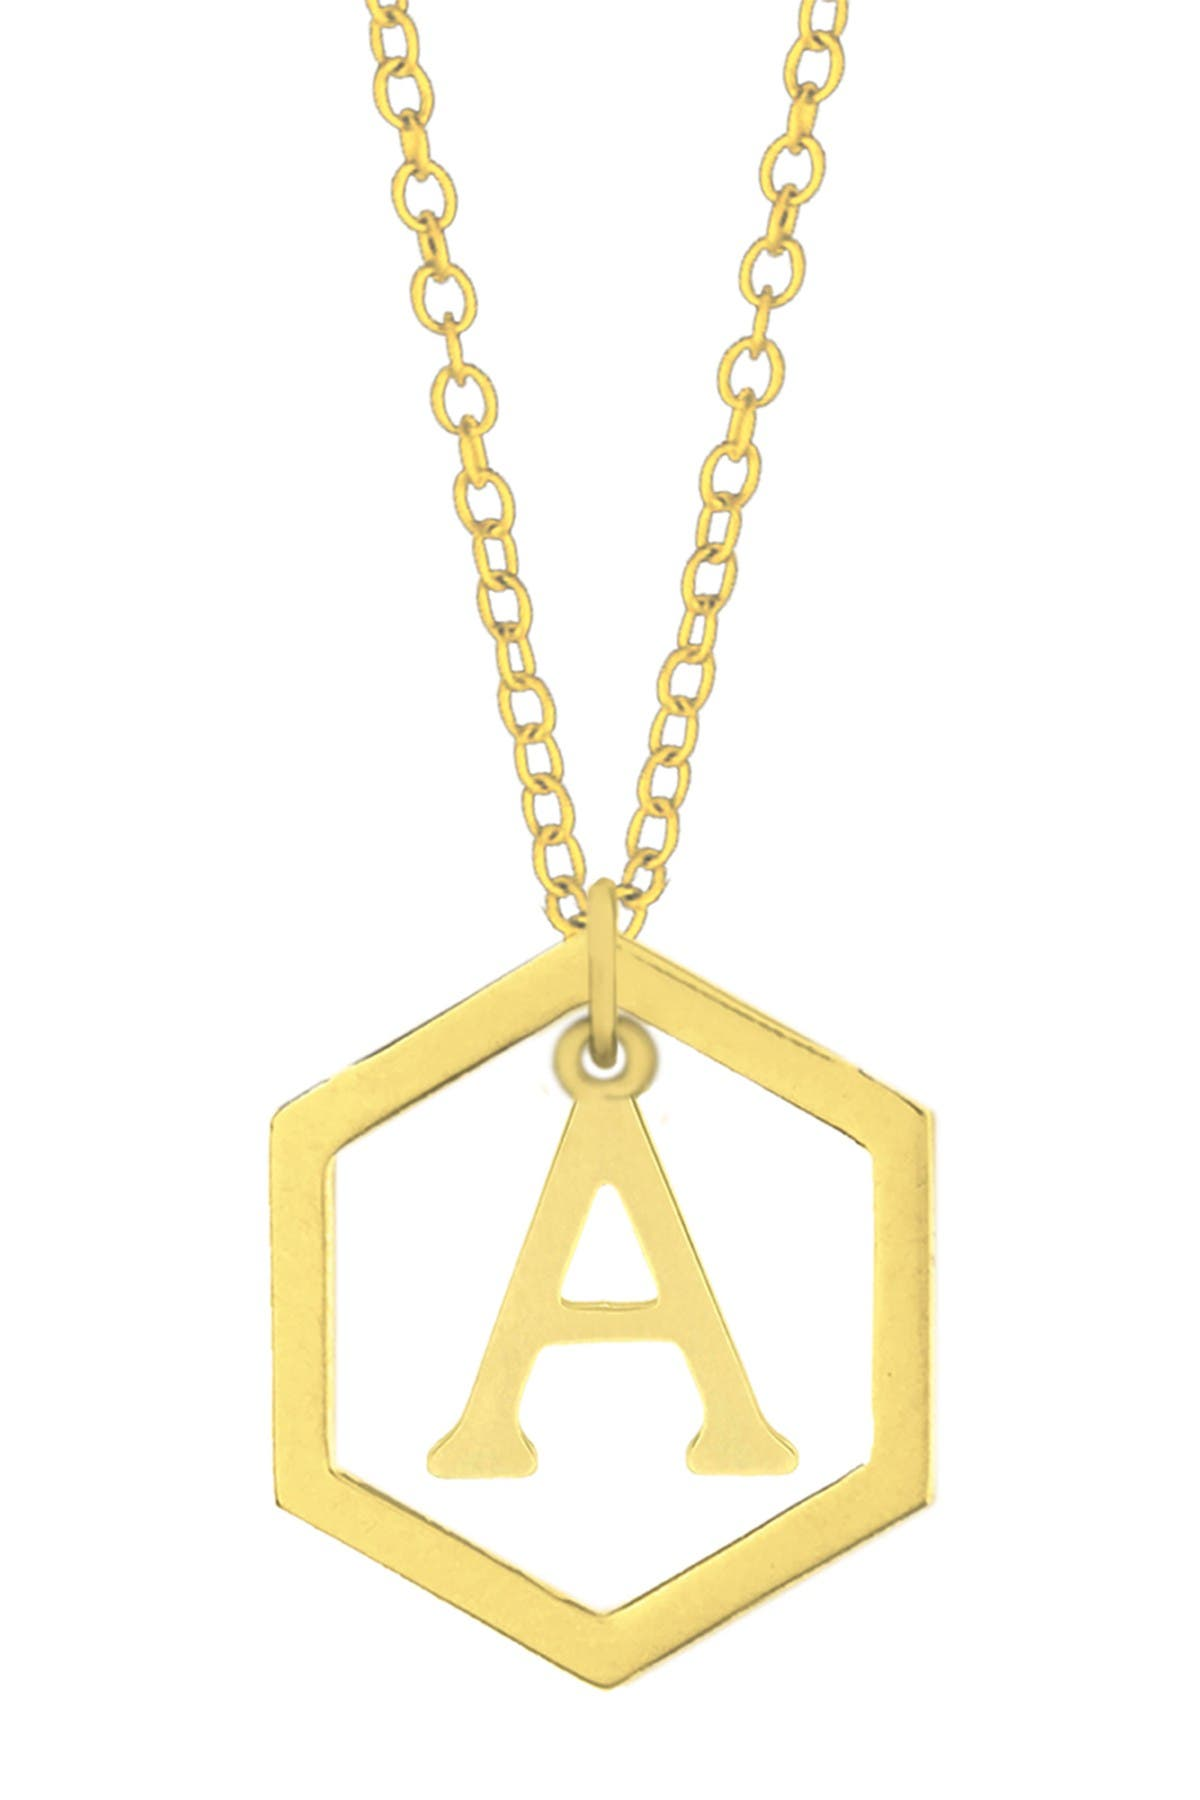 Image of Savvy Cie Geometric Initial Necklace